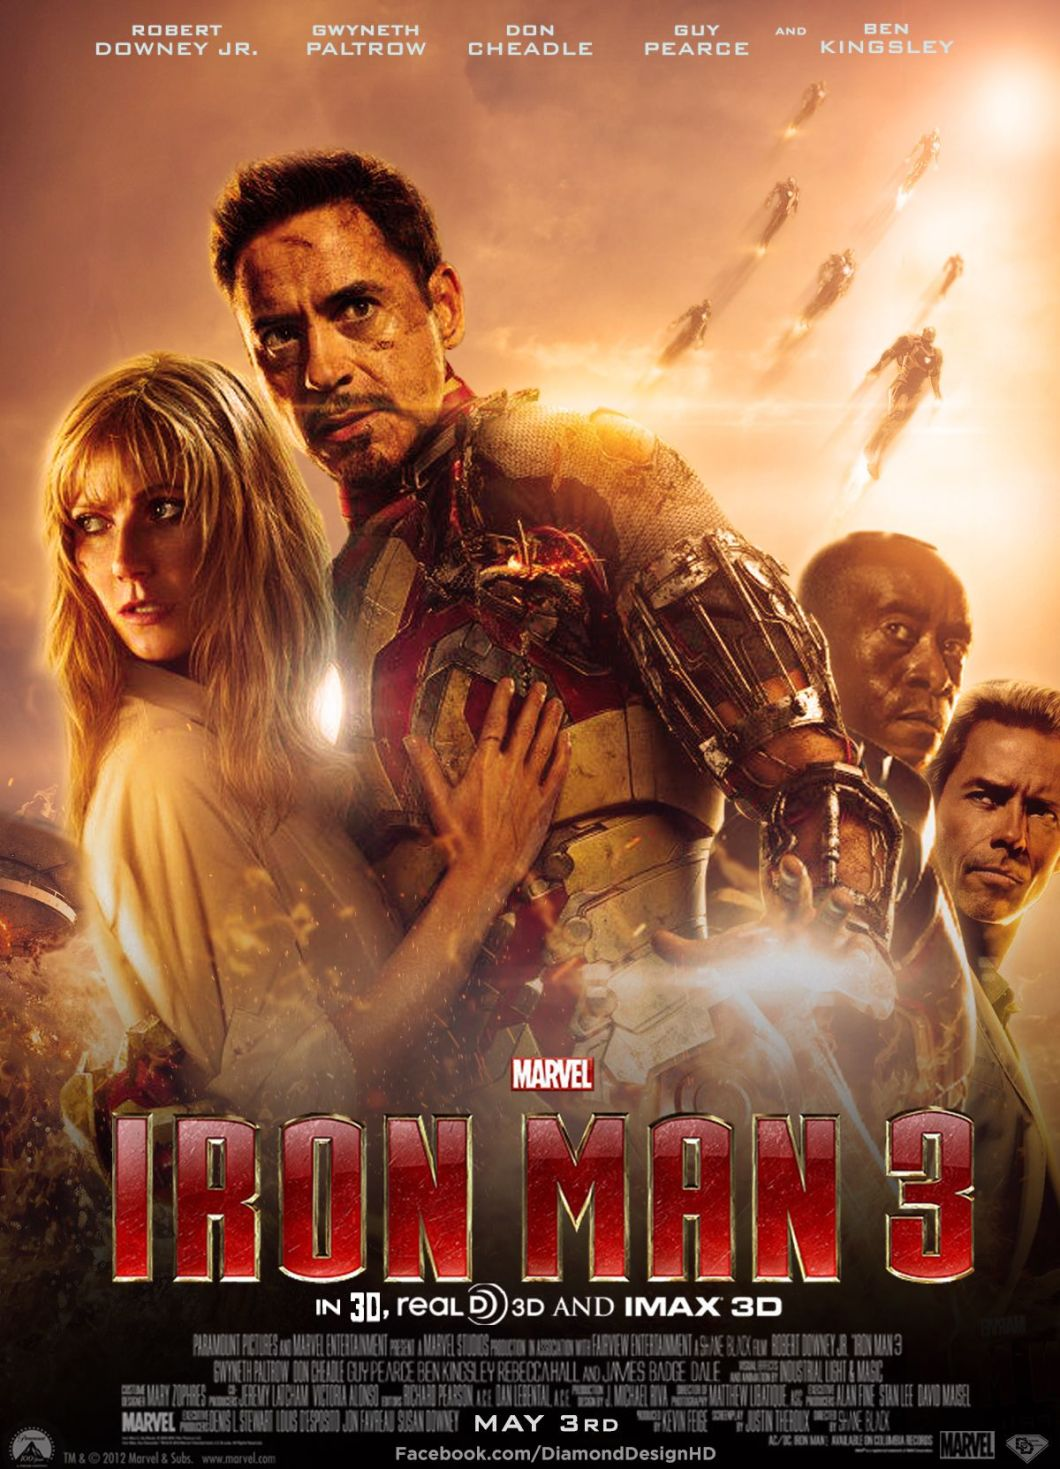 Iron Man 3 - Marvel MCU Fase 2